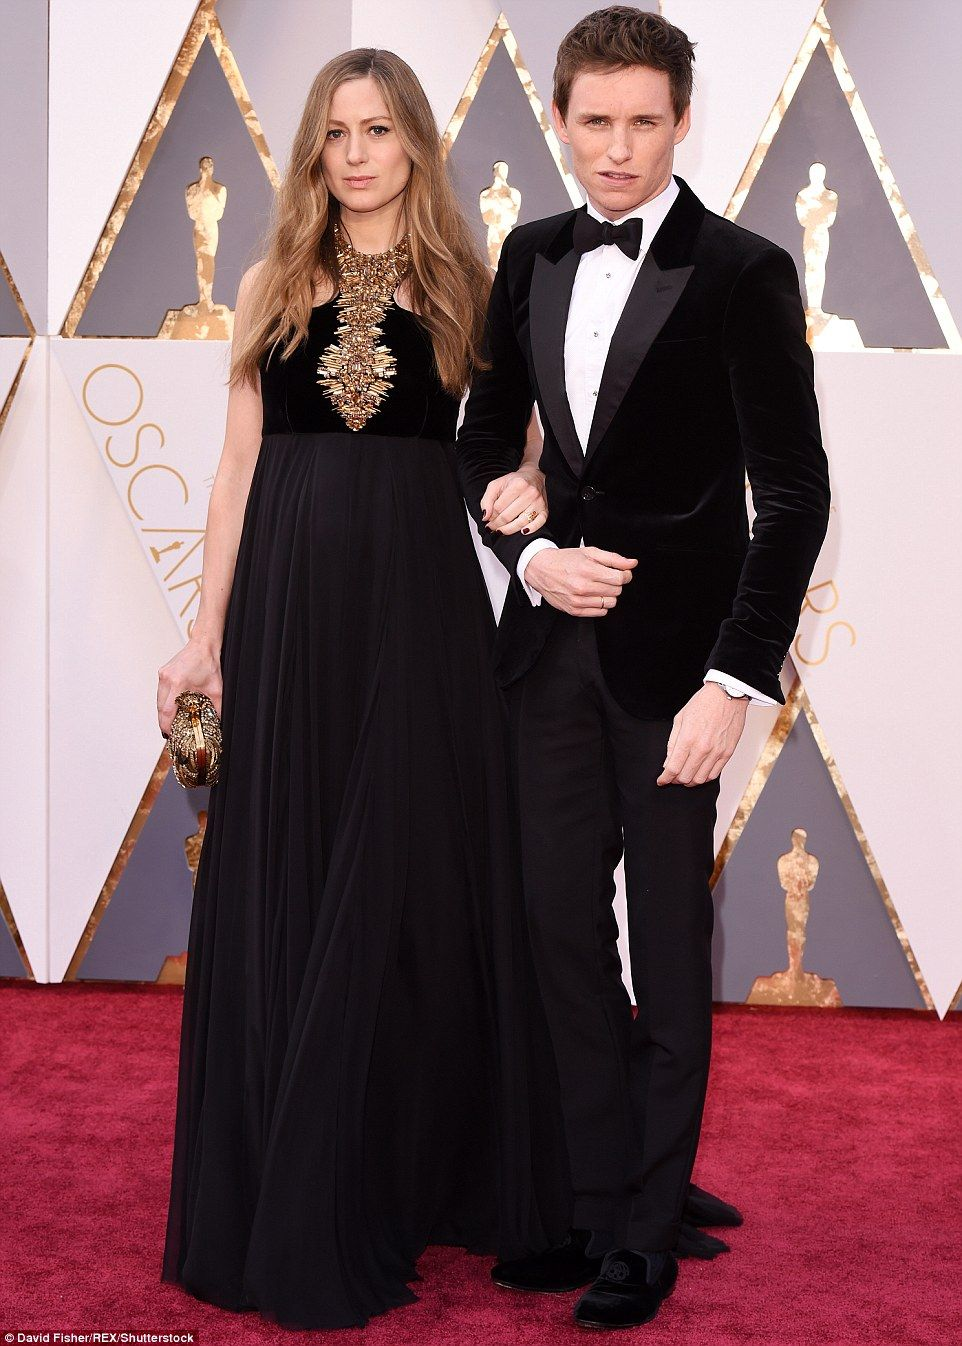 Proud parents-to-be: Eddie Redmayne went arm-in-arm with his lovely wife Hannah Bagshawe, who is expecting their first child together